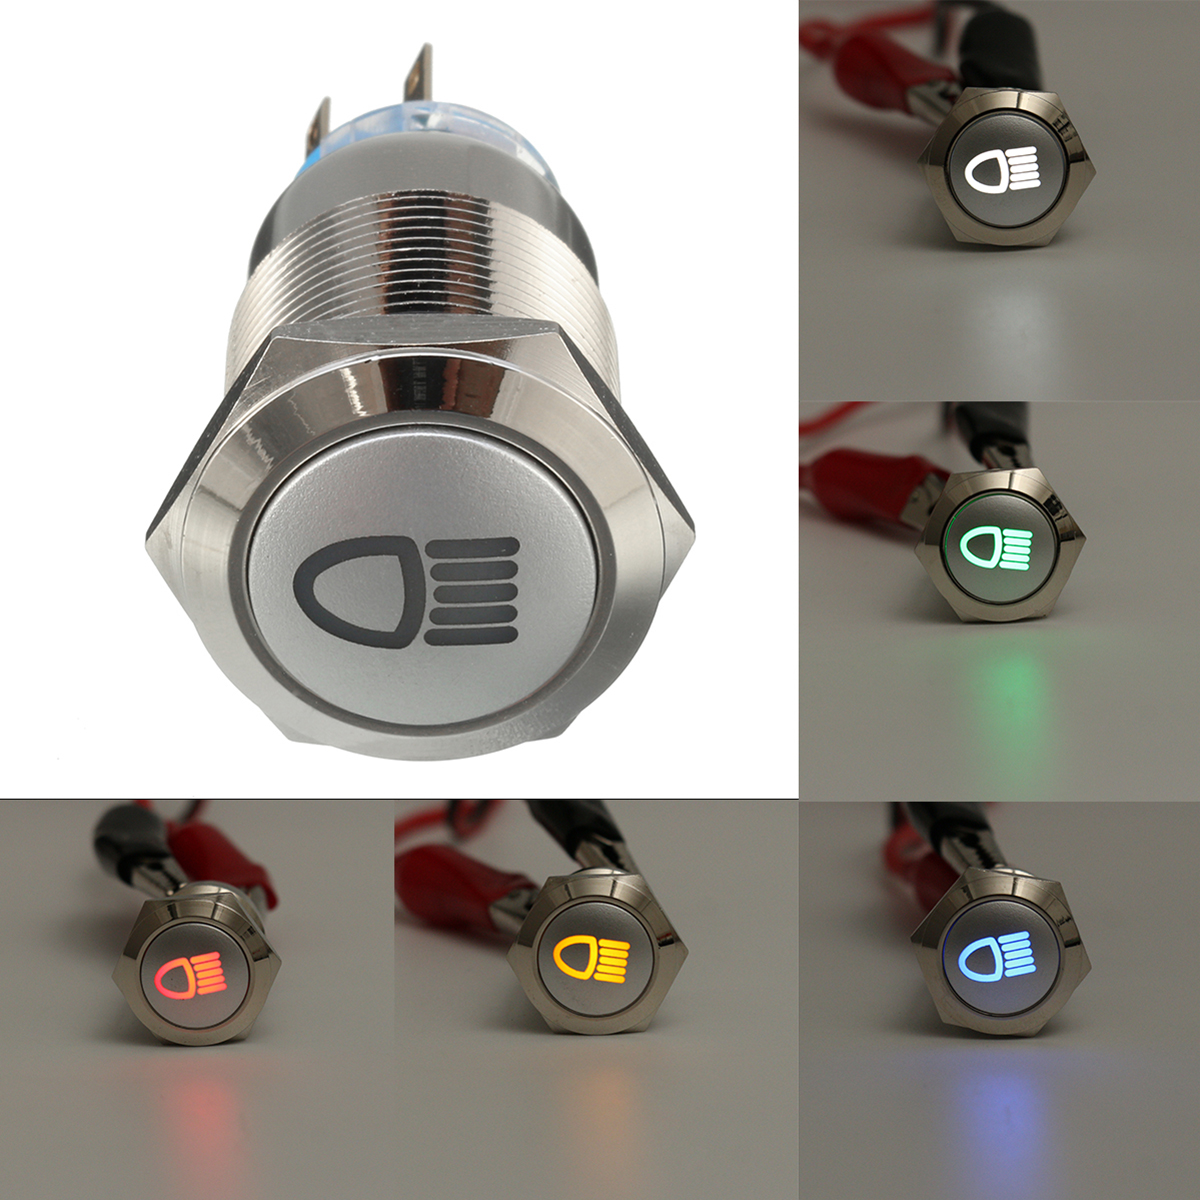 12V 19mm Silver Metal LED Push Button ON OFF Latching Switch Light Symbol